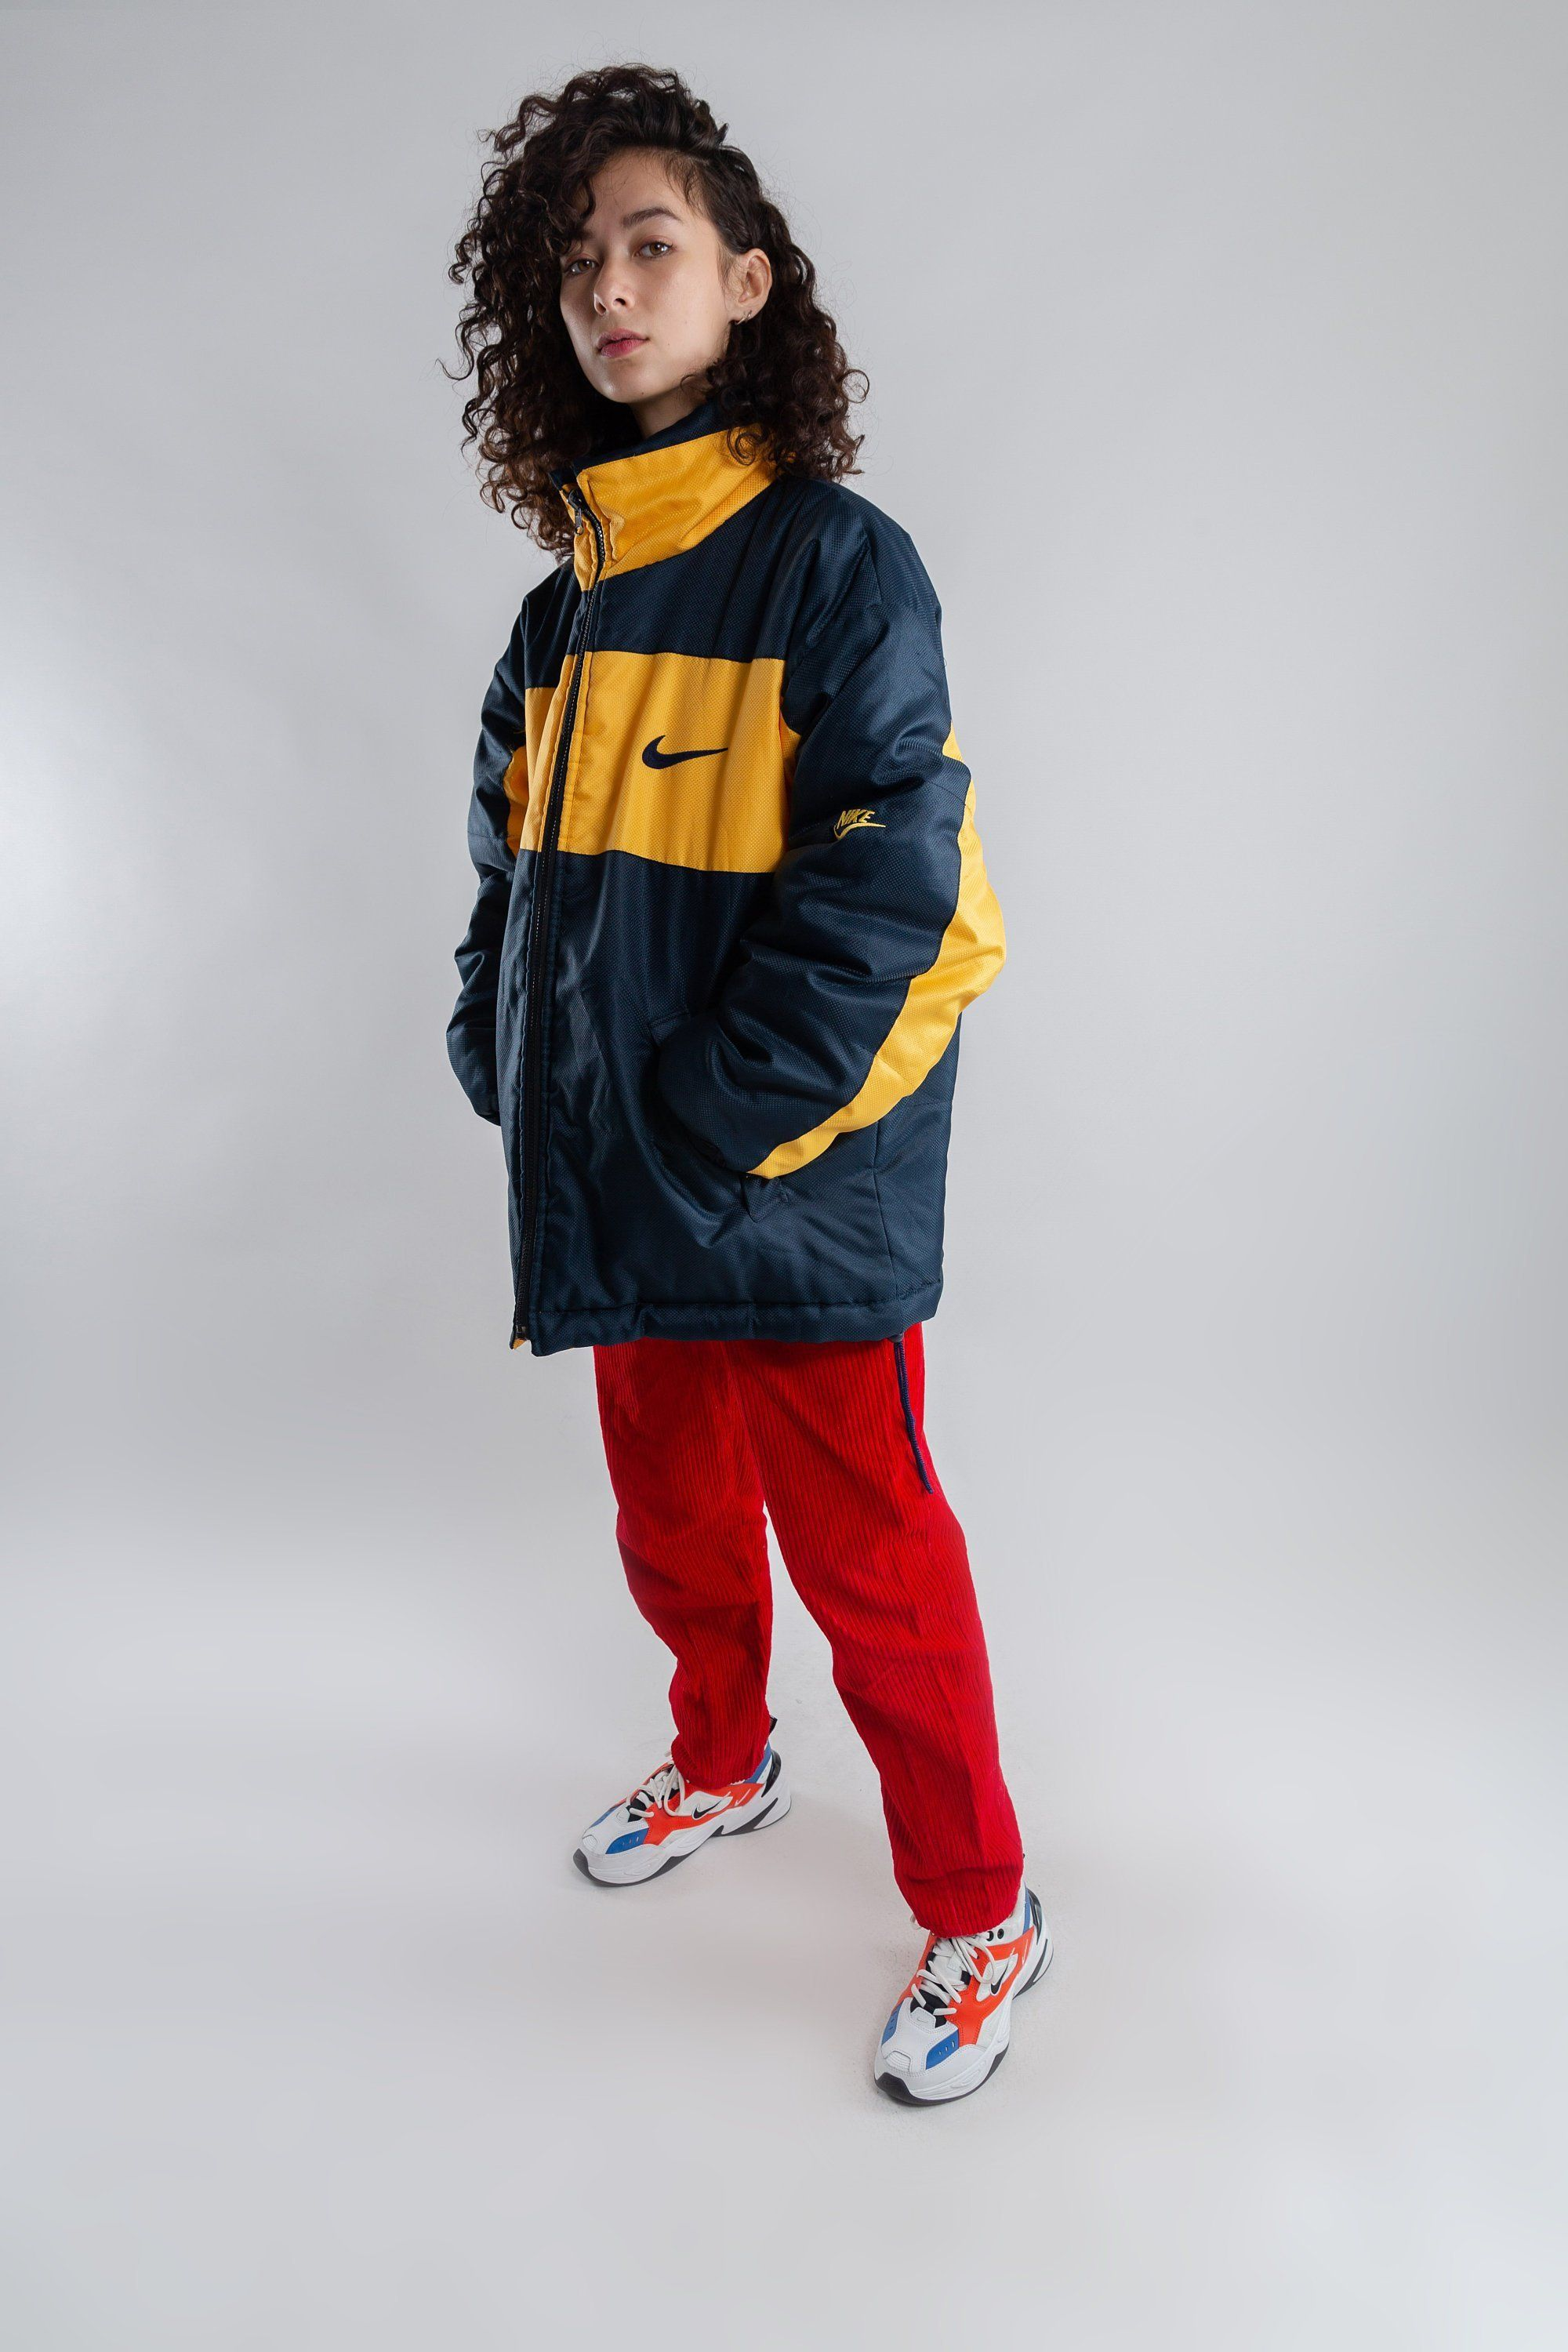 48795d8bd449 Blue and yellow oversized coach jacket   Vintage padded reversible jacket    Men s sports jacket   Woman s nineties sport jacket   Size XXL by LHITW on  Etsy ...